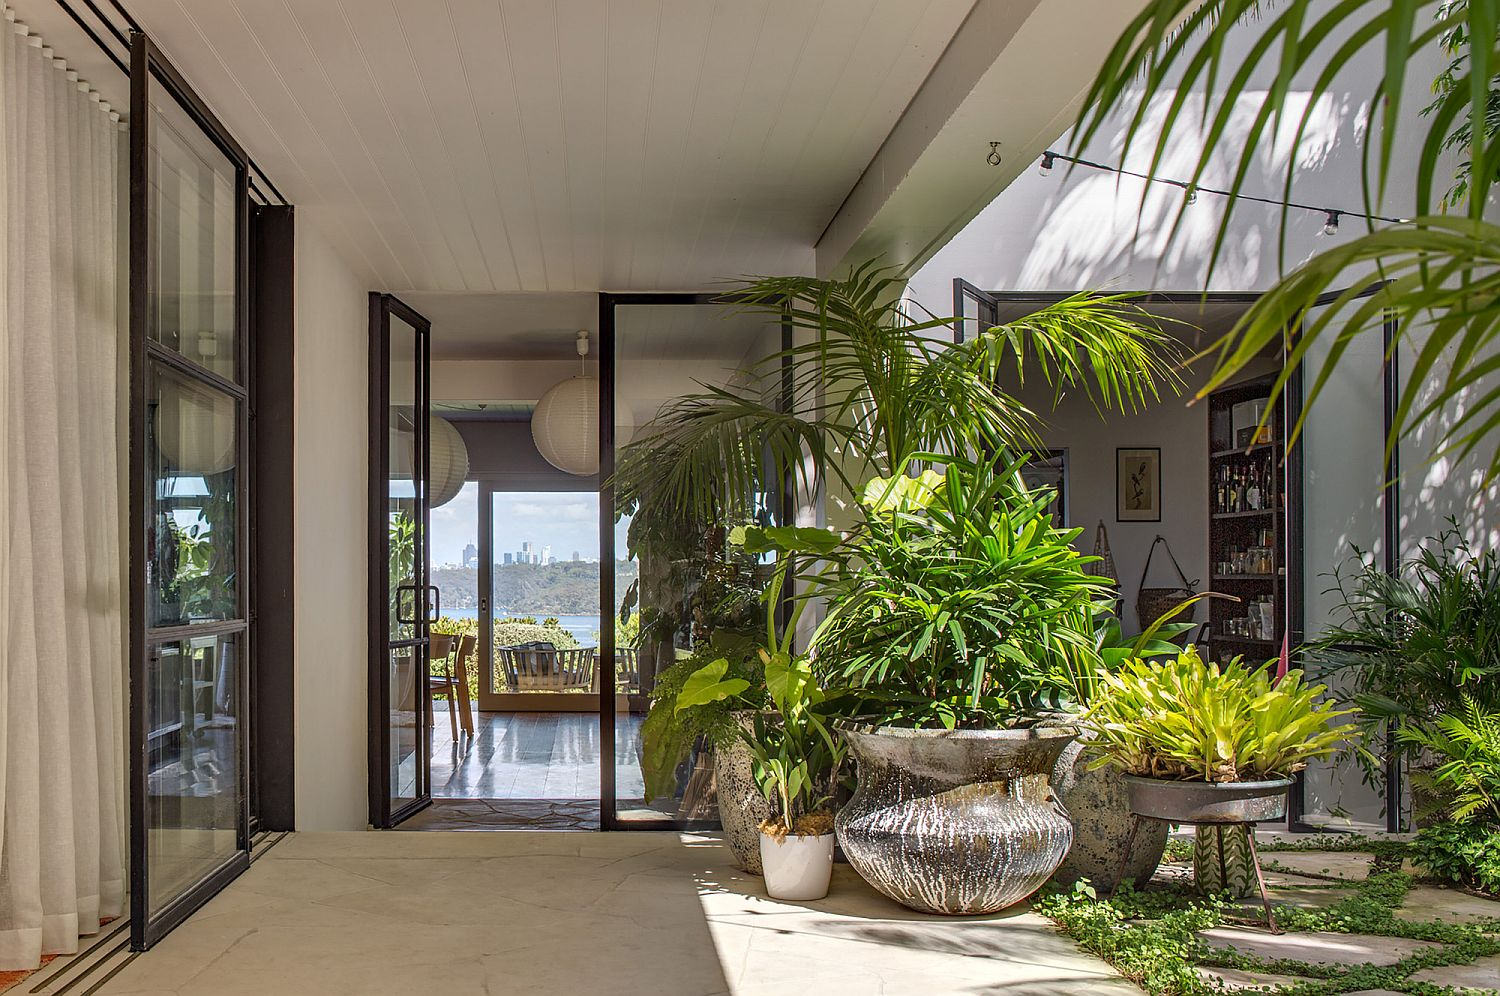 White-and-elegant-outdoor-spaces-with-plenty-of-green-thrown-in